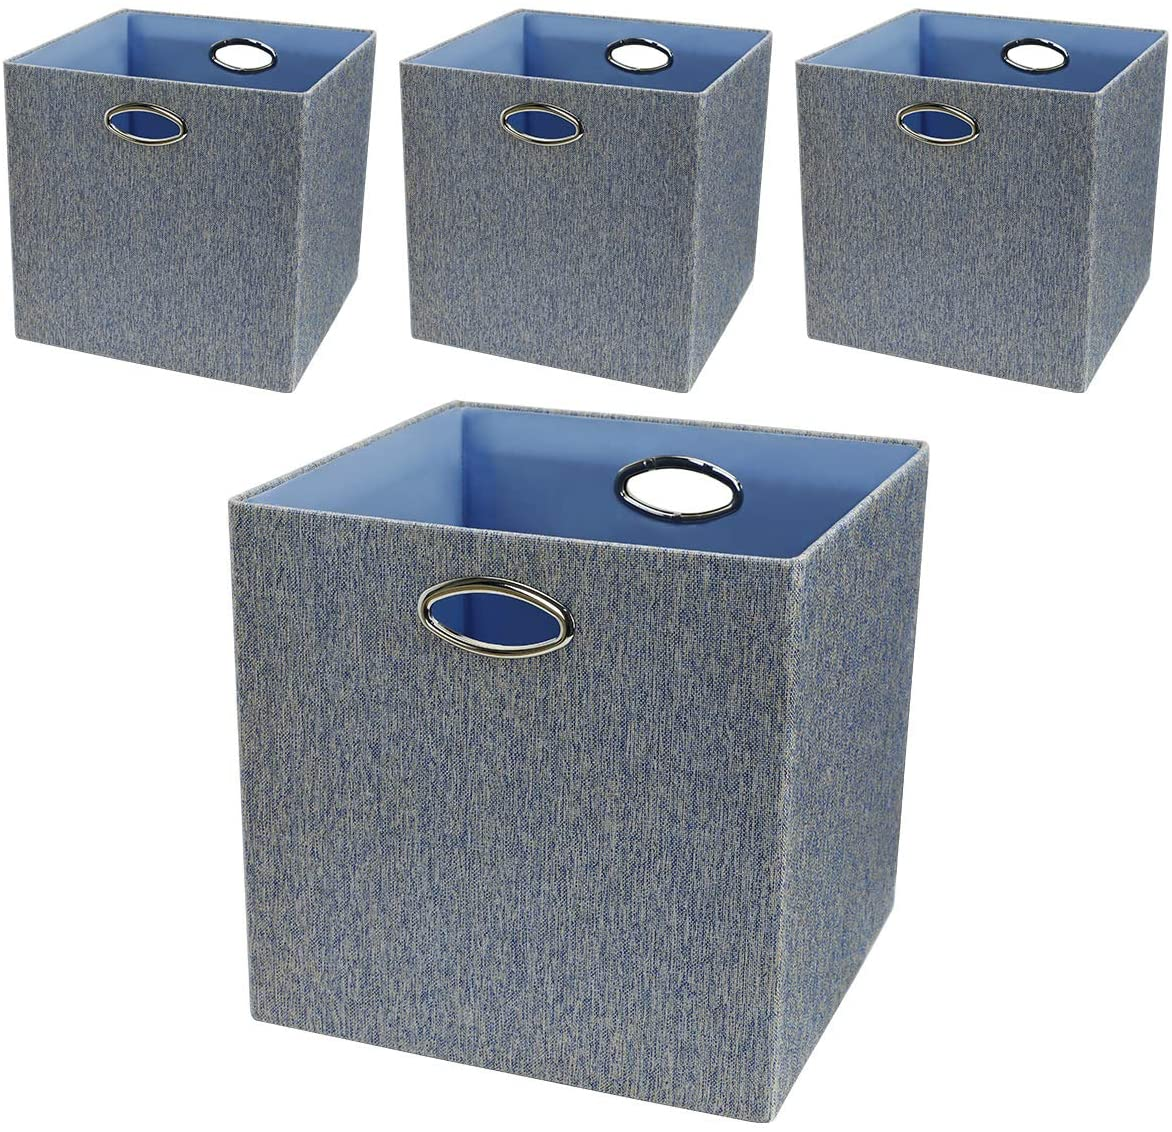 Posprica Storage Bins,13×13 Storage Cubes,Collapsible Fabric Storage Baskets Boxes Containers Drawers, 4pcs (Mixed of Blue/Grey)